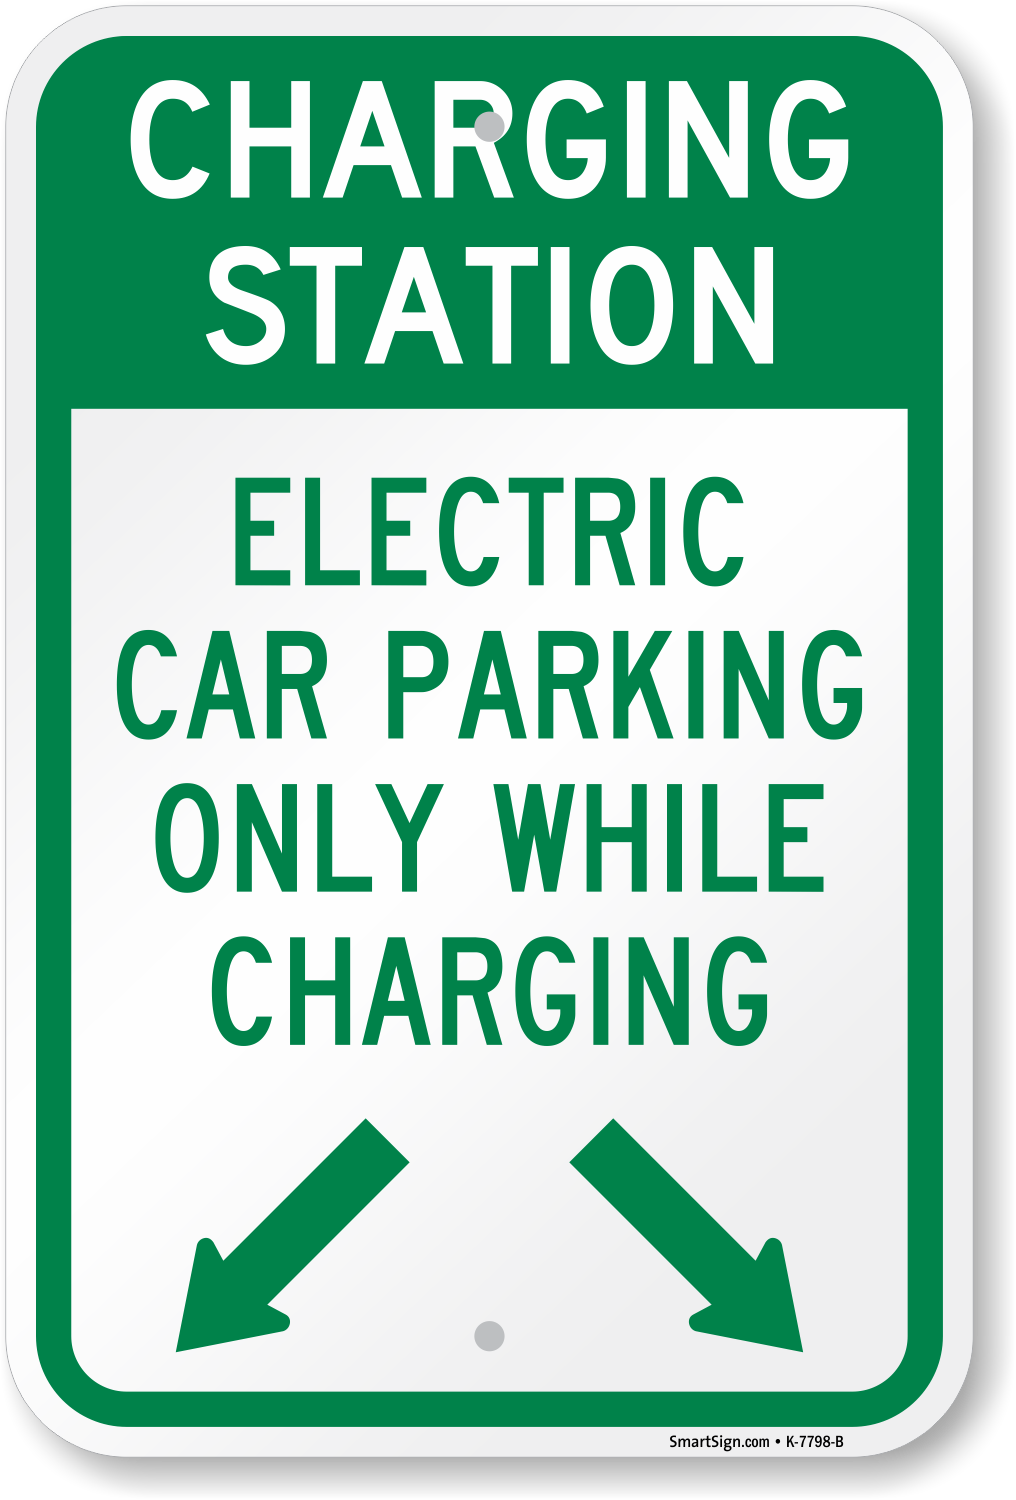 Car Parking Rules And Regulations